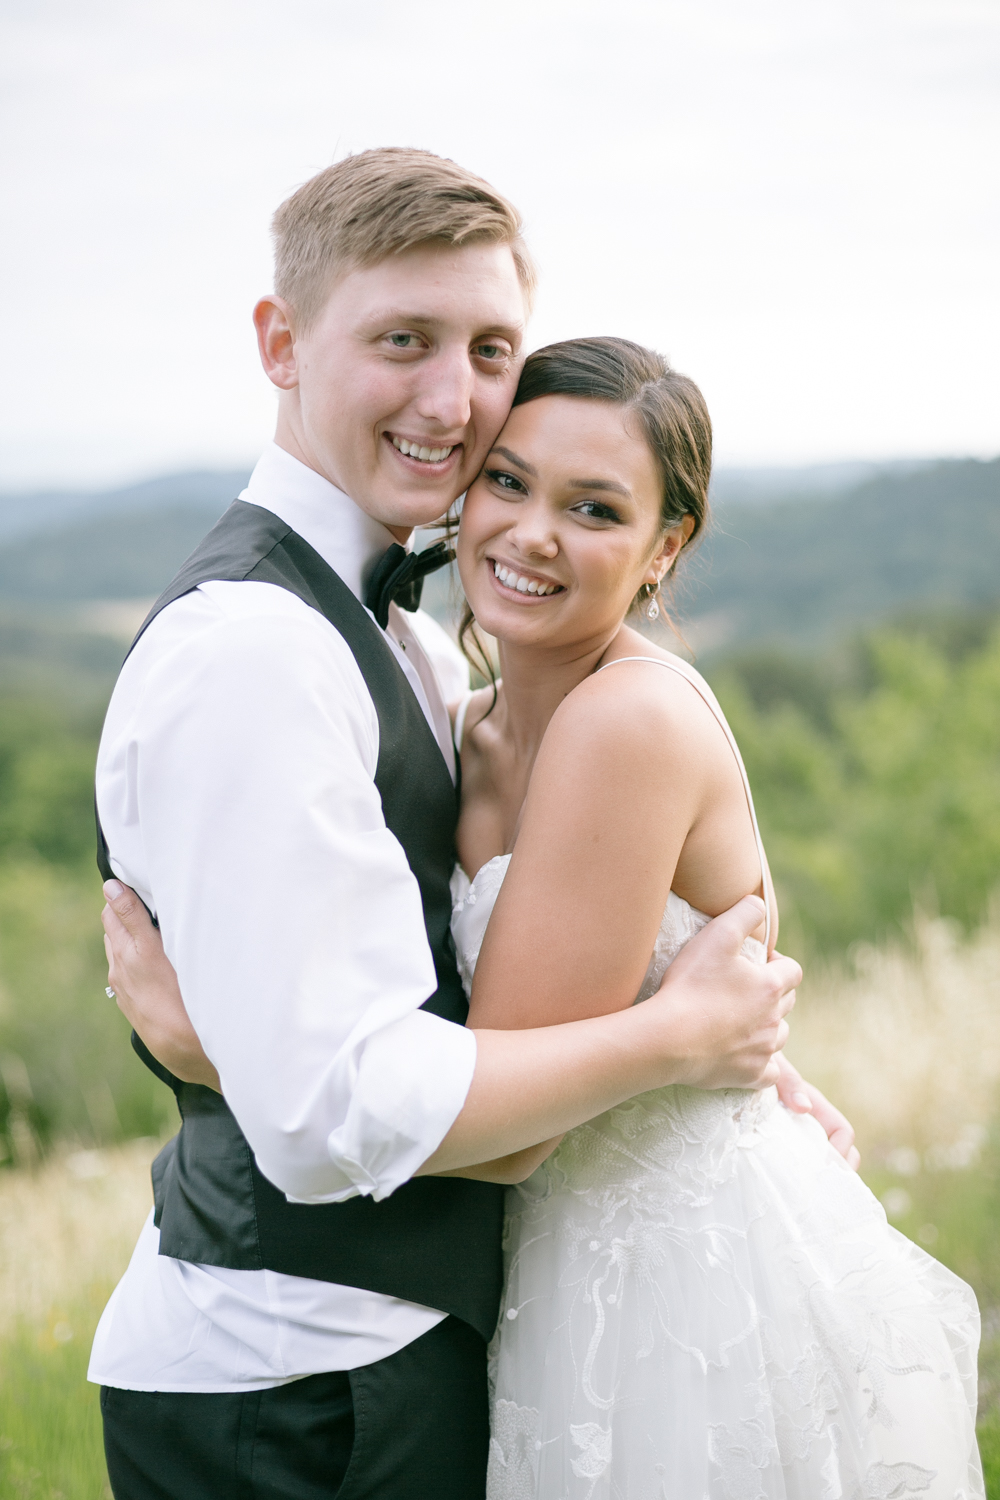 Youngberg Hill Vineyard Wedding in Wine Country Oregon - Corrie Mick Photography-222.jpg